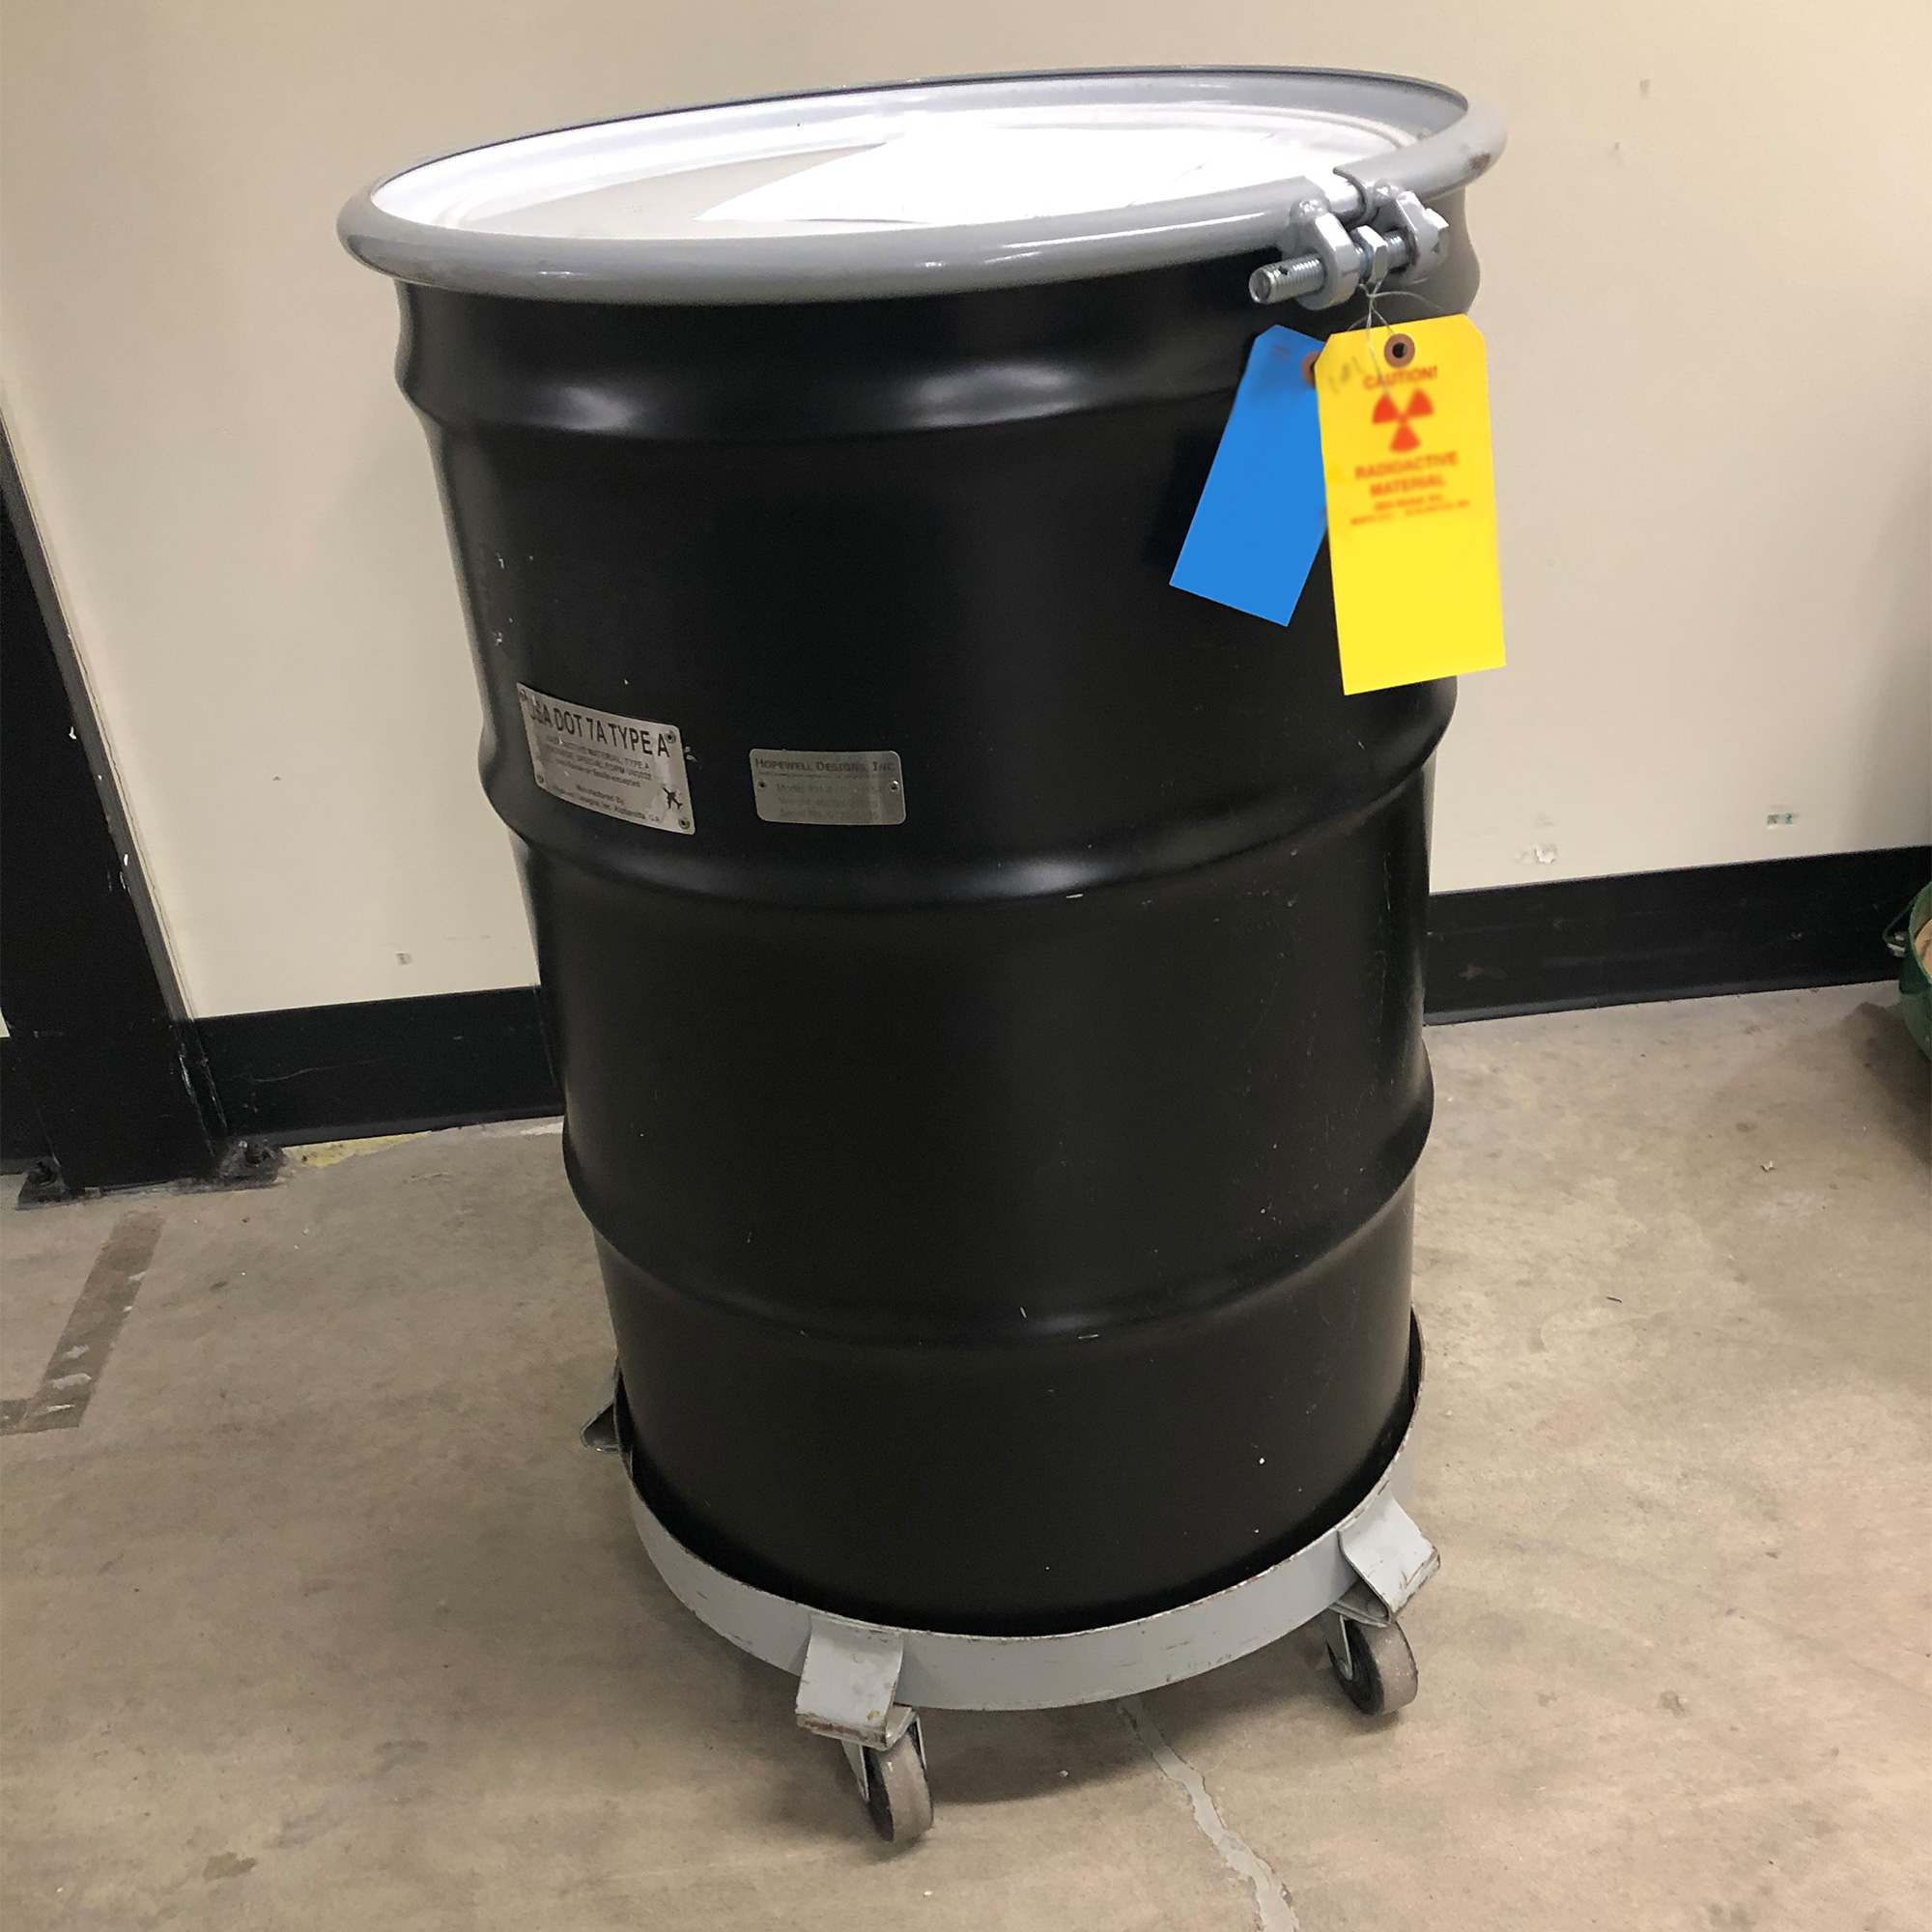 55 gallon container to hold multiple AmBe sources.